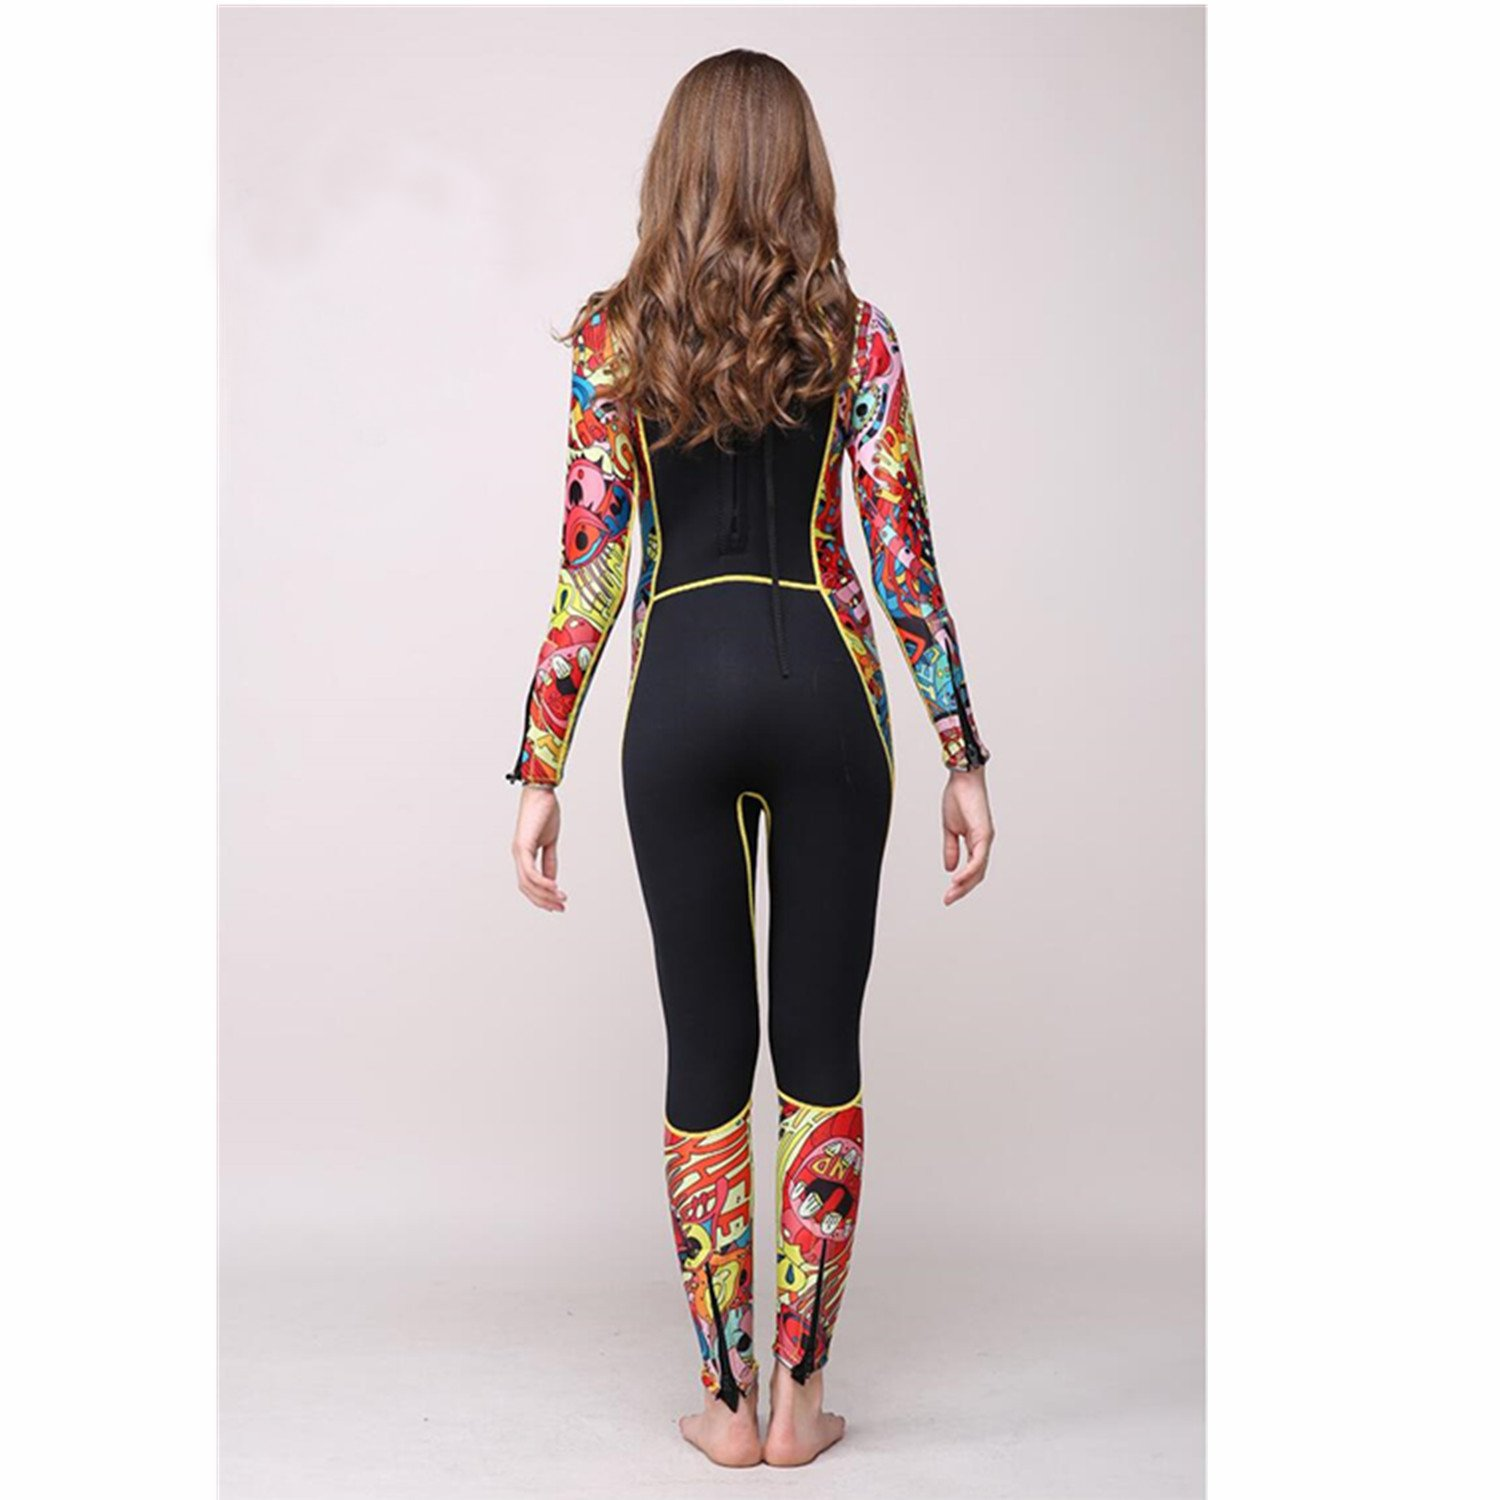 Diving suit 3mm Full Suit Flatlock Stitching Jumpsuit with Super-stretch Armpit Wetsuits Prevent Jellyfish Sting